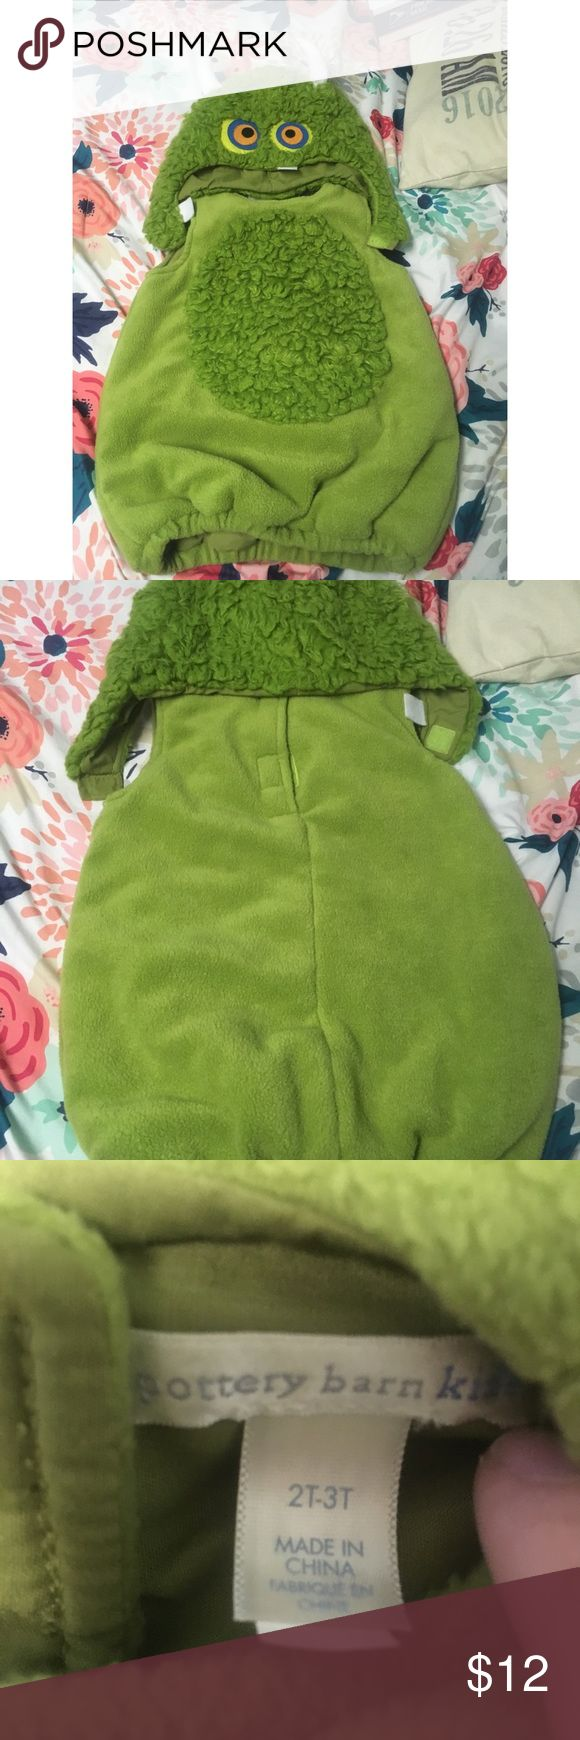 {Pottery Barn Kids} Monster Costume They're expensive brand new (even resale), bought from another mama with the intent to use Halloween 2017 but didn't realize it was 2T-3T. I thought it was just 2T. We don't have any pets but came from a home with pets before us. Only flow is a pin hole & bought it like that (see picture-doesn't affect use) will not trade, separate, hold, deliver or accept PayPal. Questions? Ask!❤️ Pottery Barn Kids Costumes Halloween